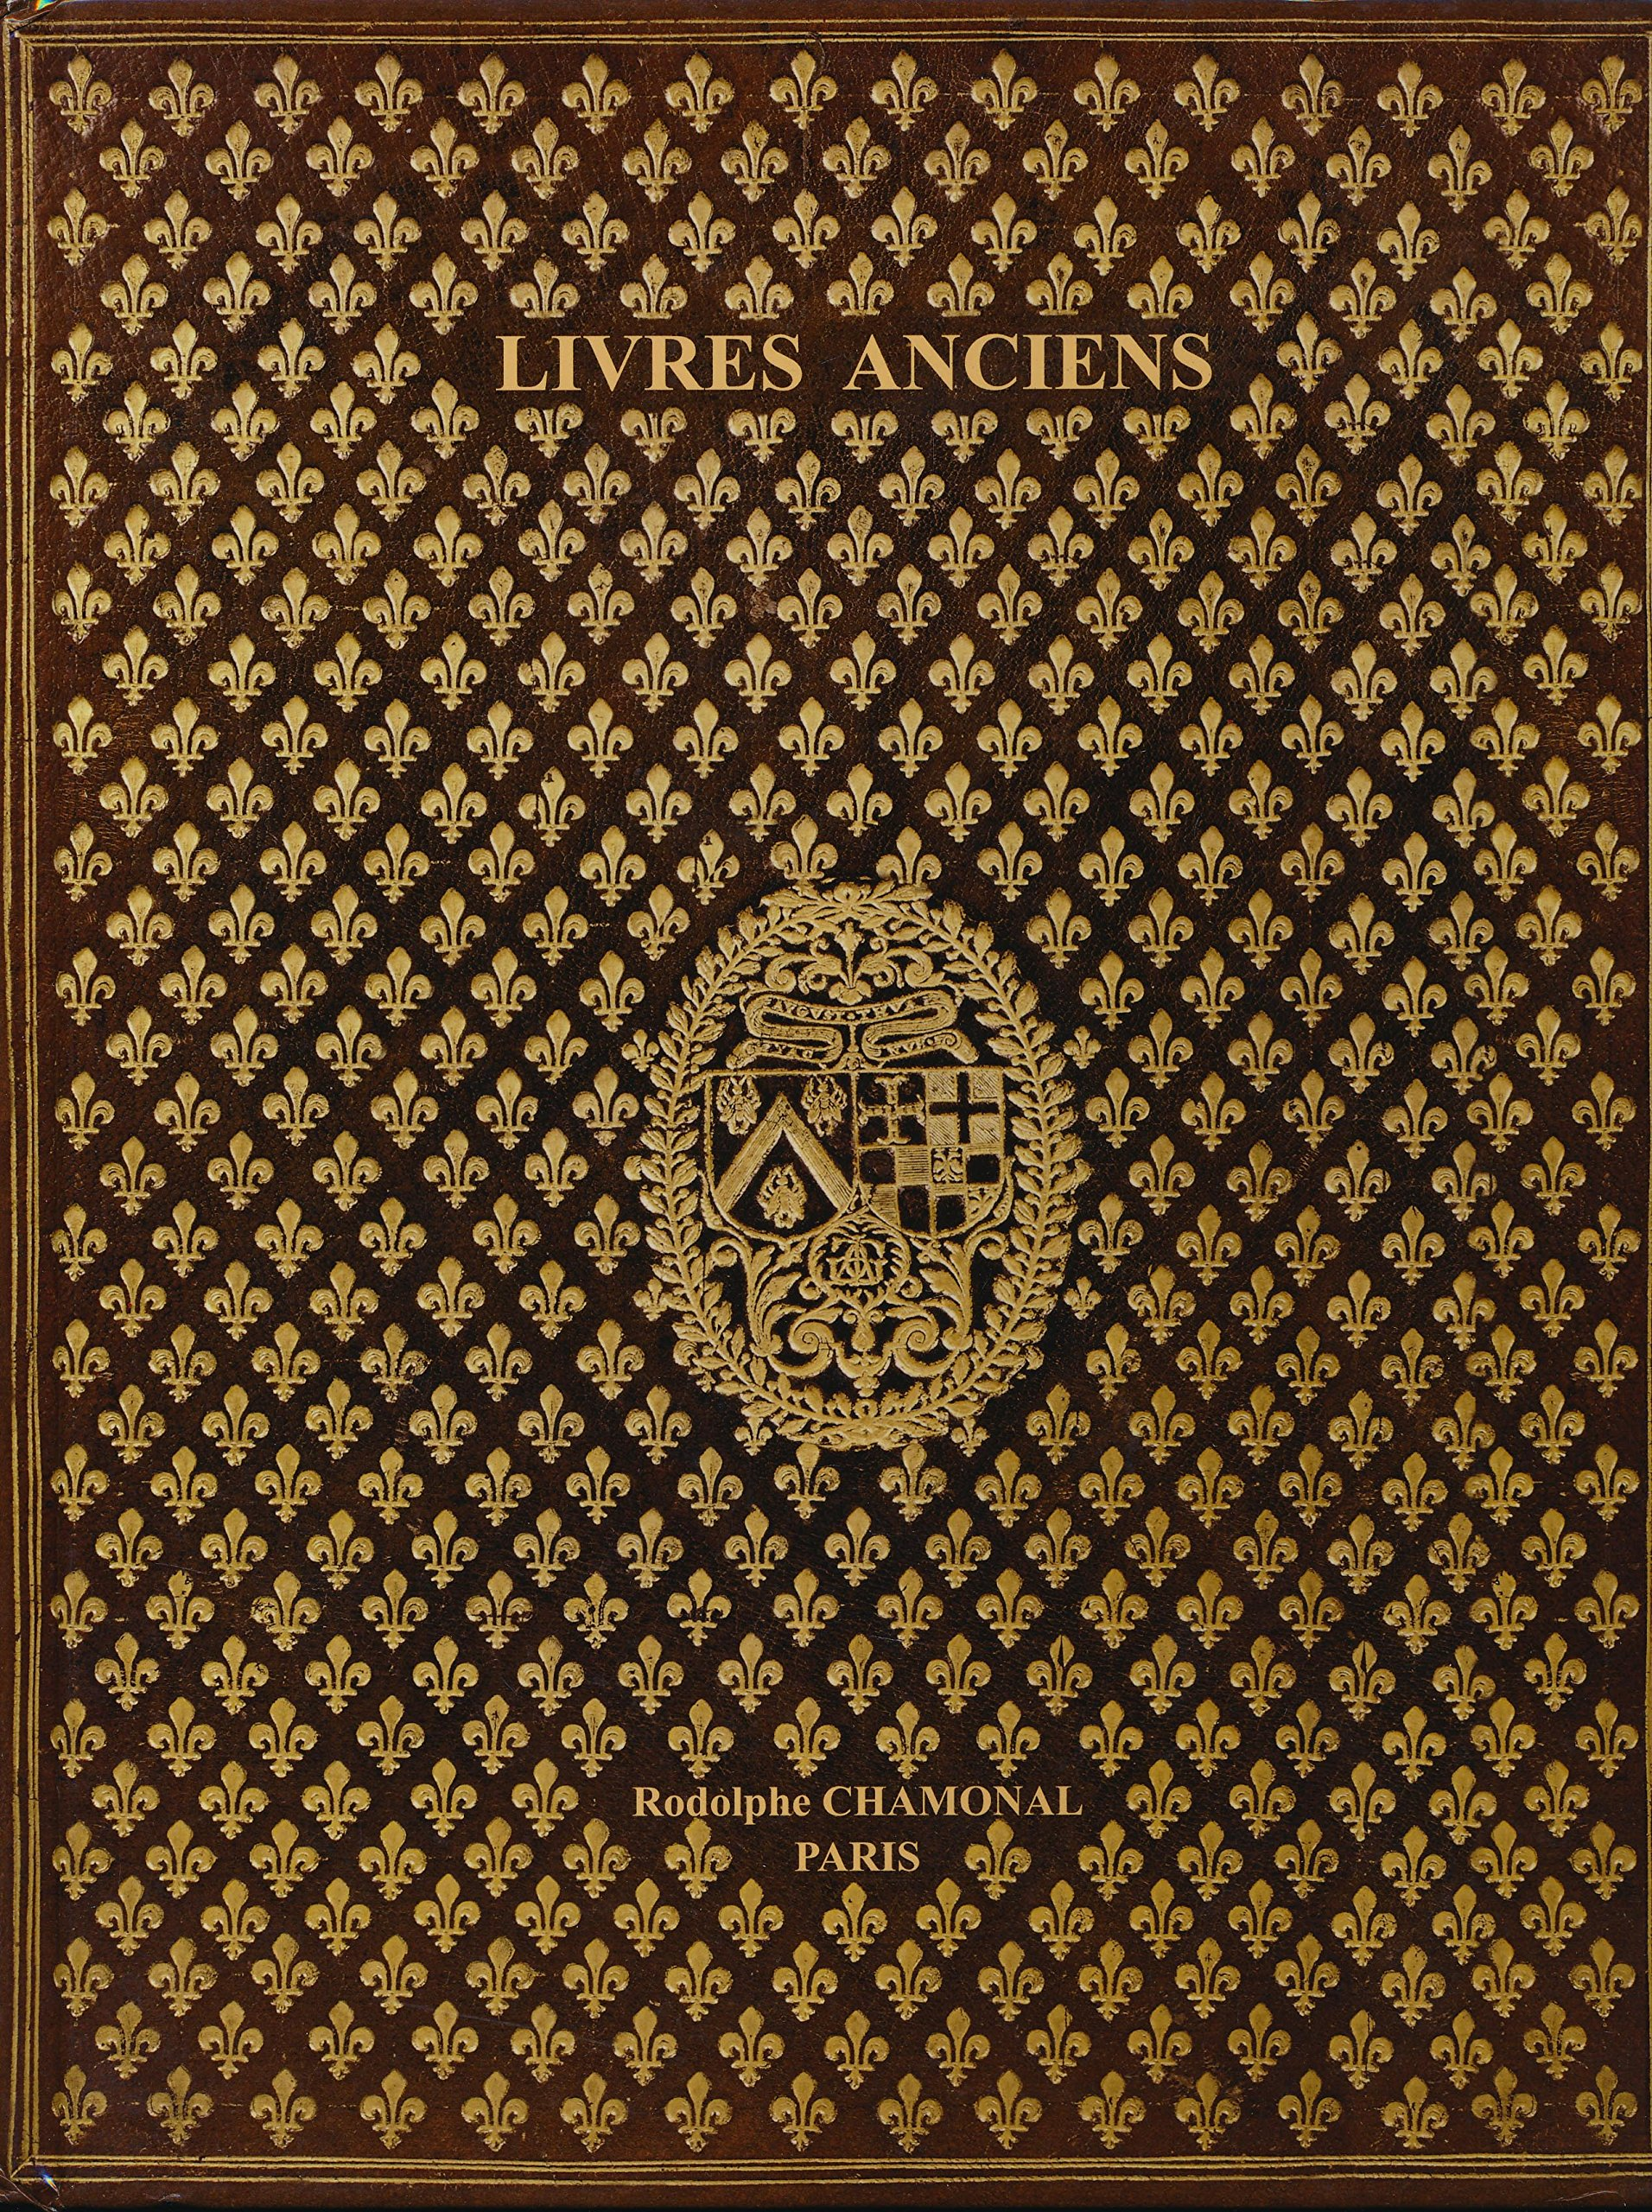 Livres Anciens Rodolphe Chamonal Bookseller S Catalogue